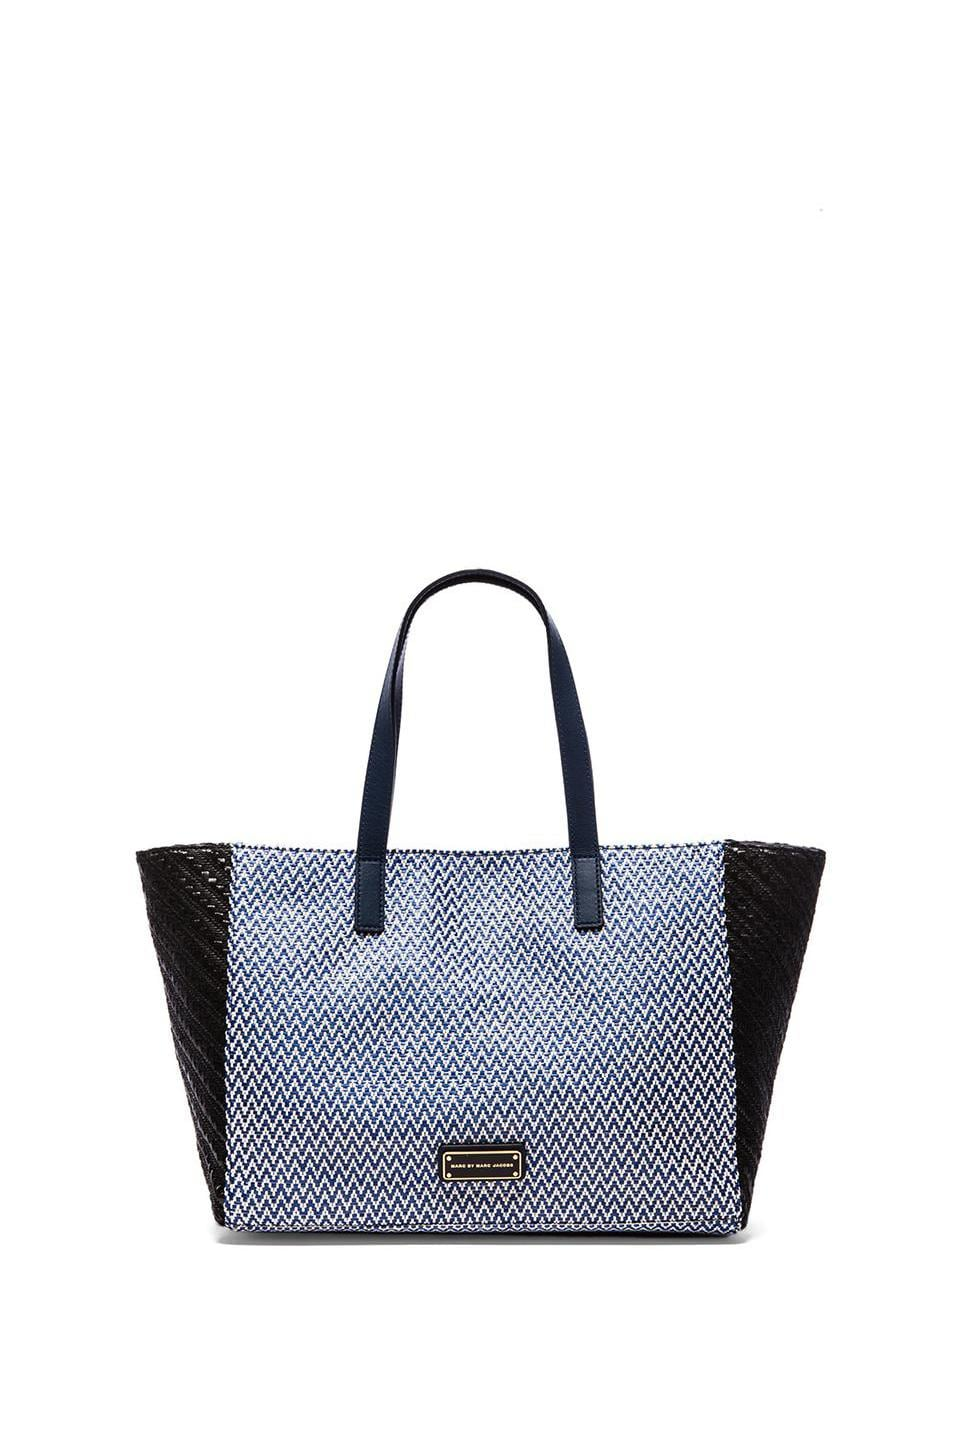 Marc by Marc Jacobs Isle de Sea Tina Tote in Blue Zig Zag Multi